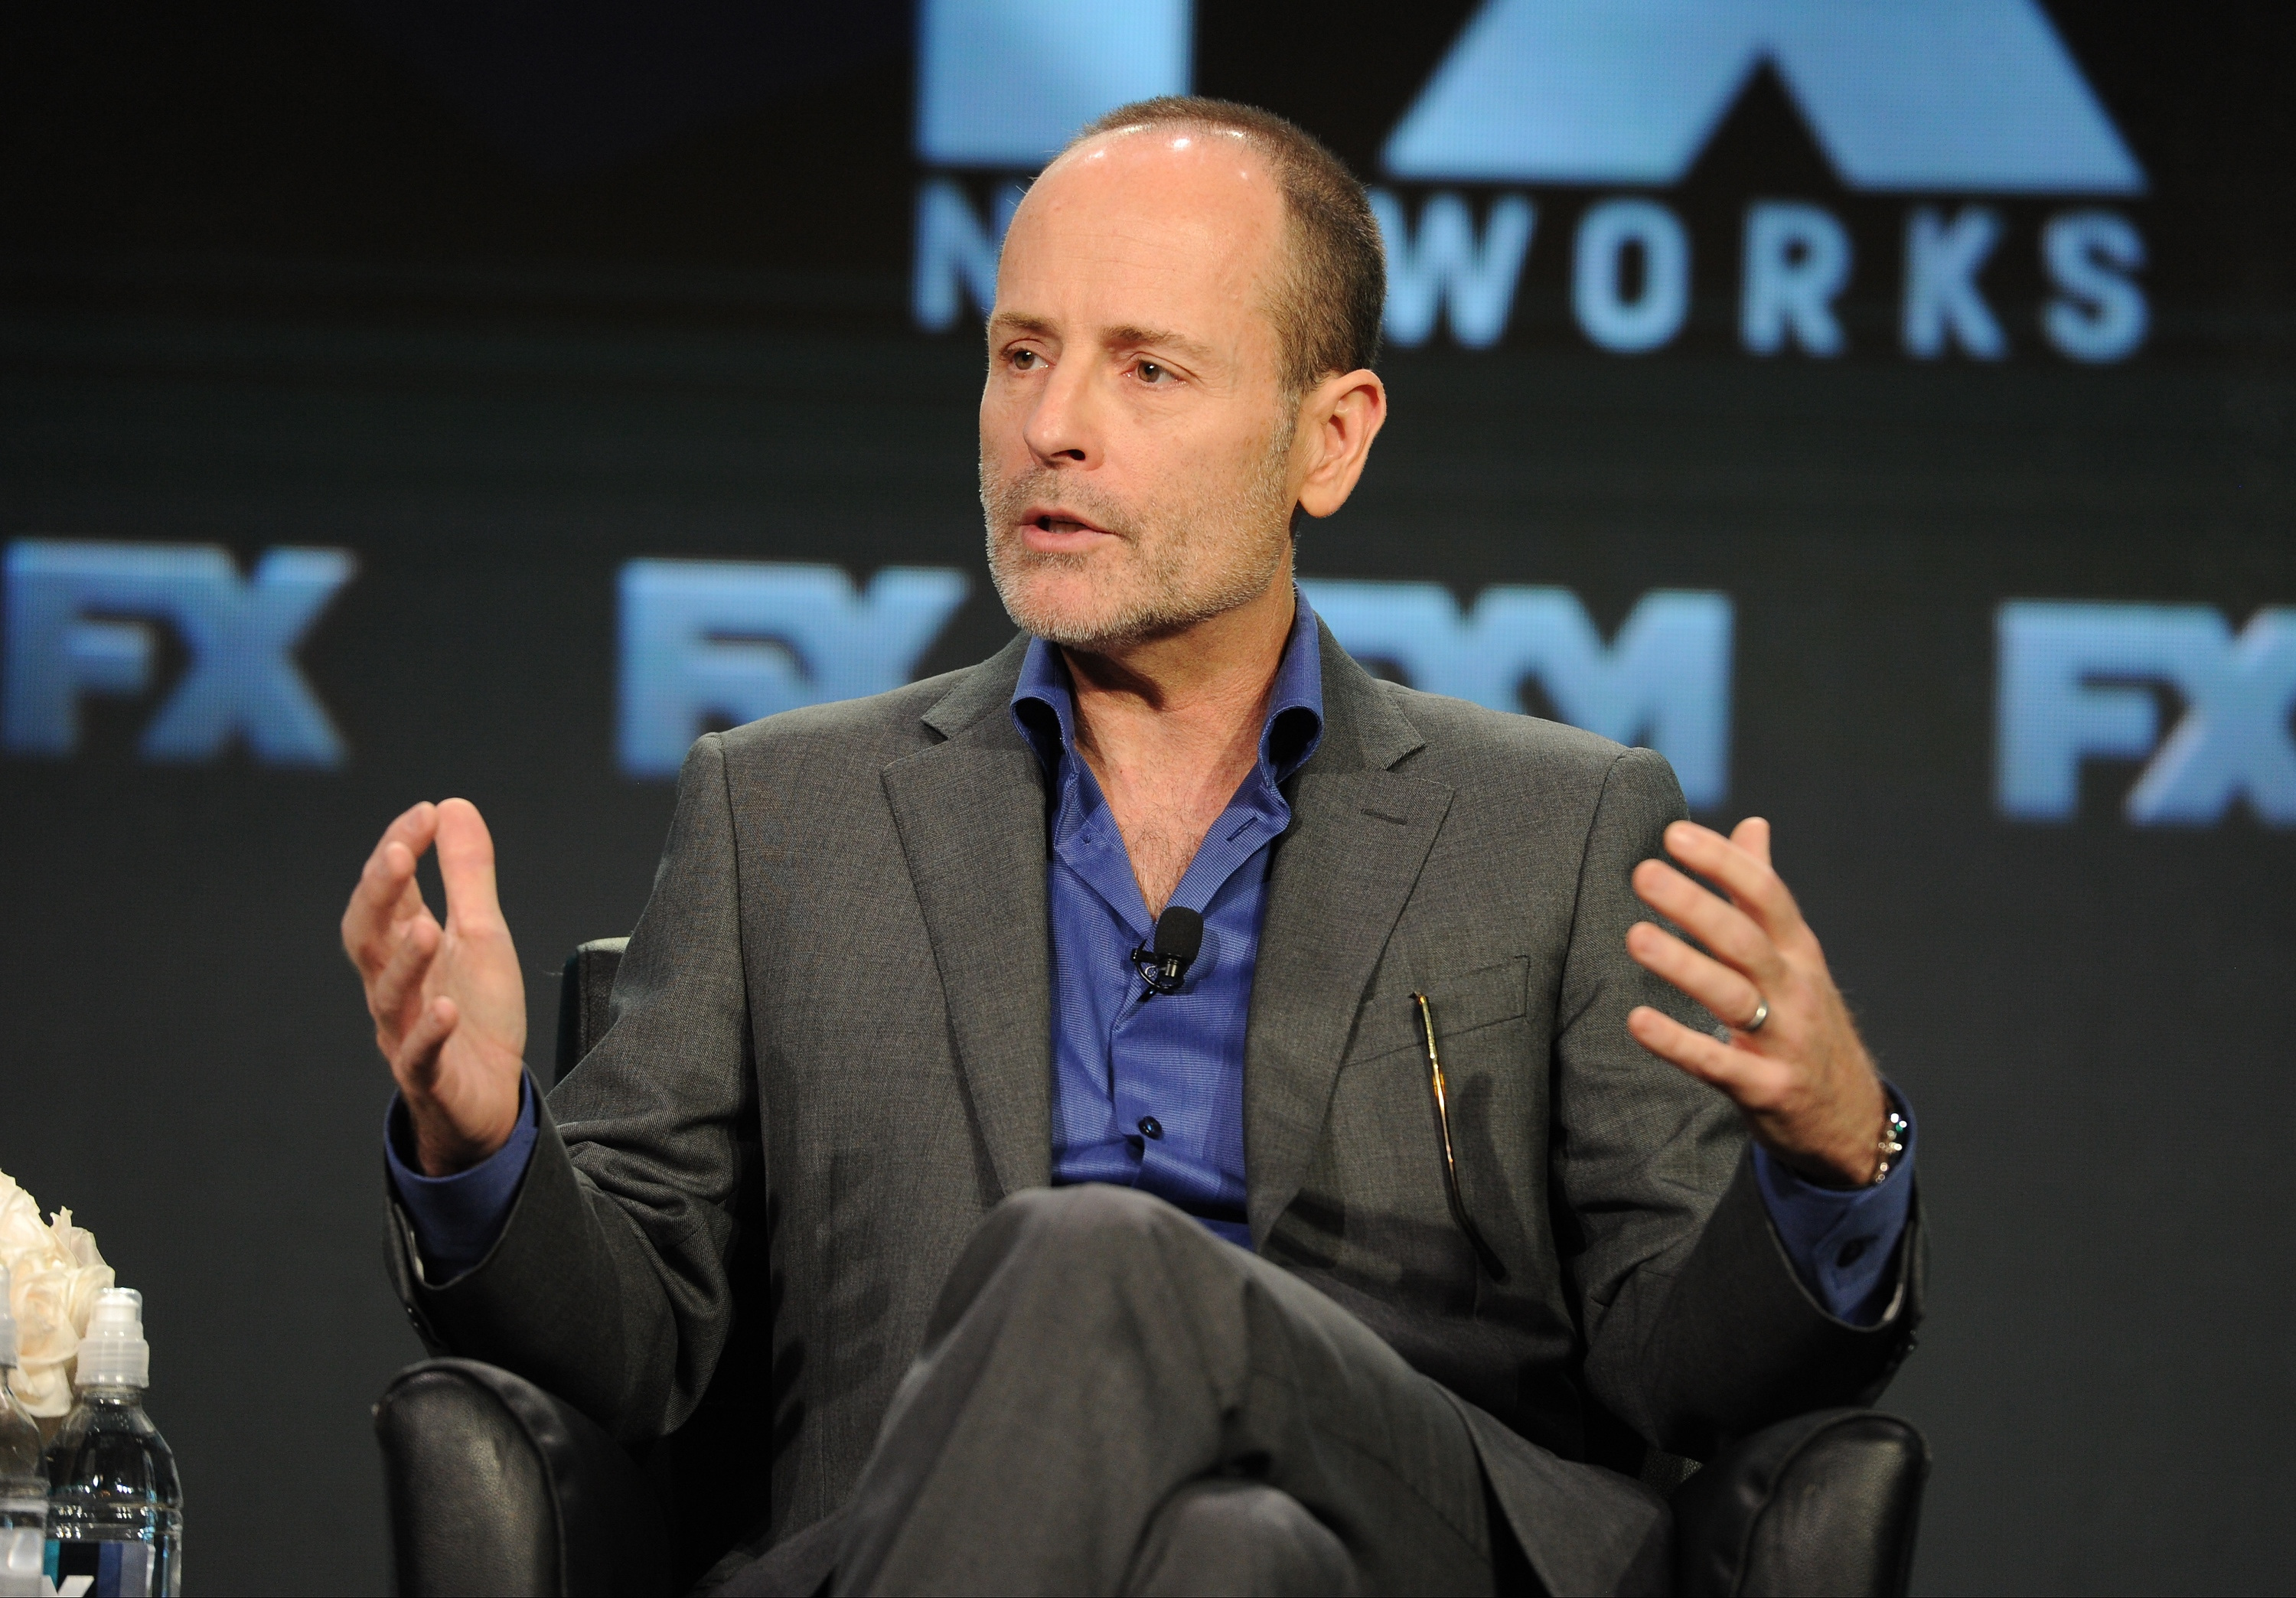 2016 FX WINTER TCA: CEO FX Networks & FX Productions John Landgraf addresses TCA members during the Executive Session at the 2016 FX WINTER TCA at the Langham Hotel, Saturday, Jan. 16 in Pasadena, CA. CR: Frank Micelotta/FX